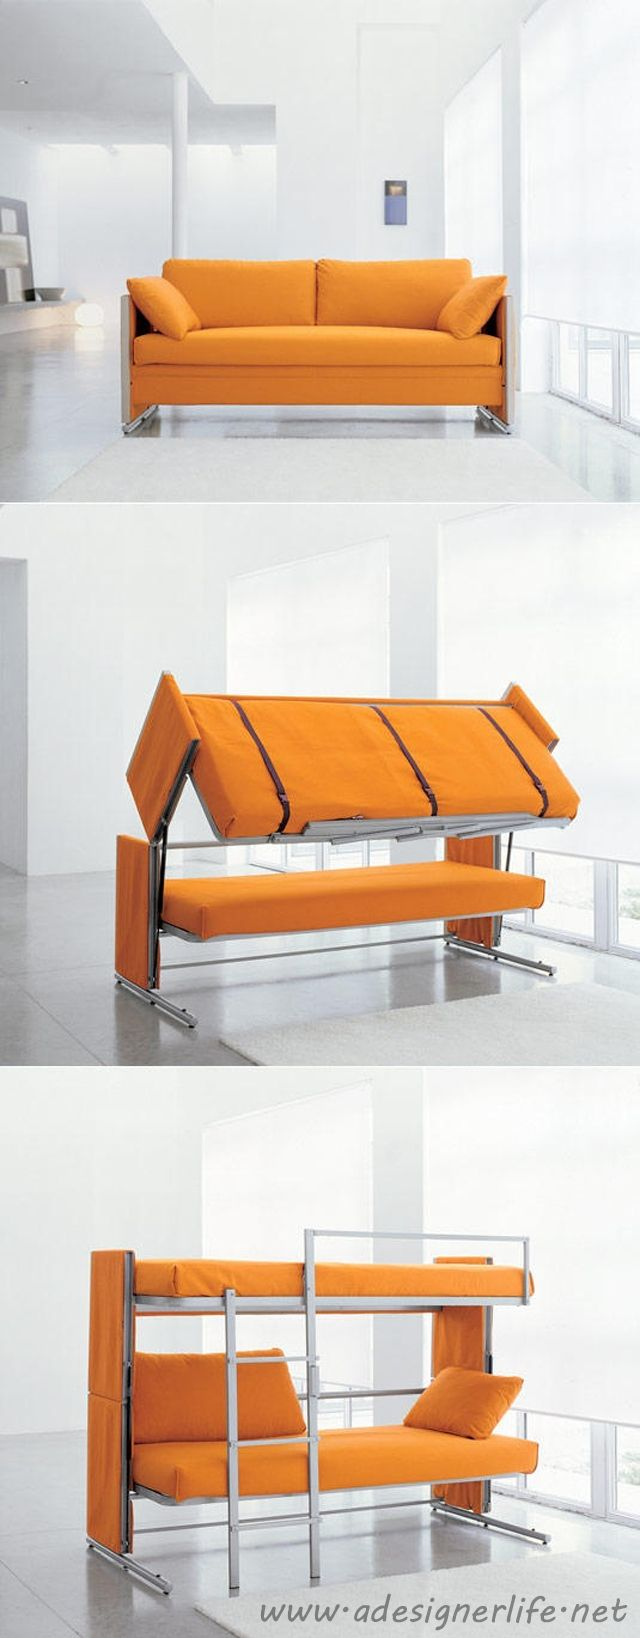 Resource Furniture Convertible Sofa to Bunk Bed #product_design #furniture_design